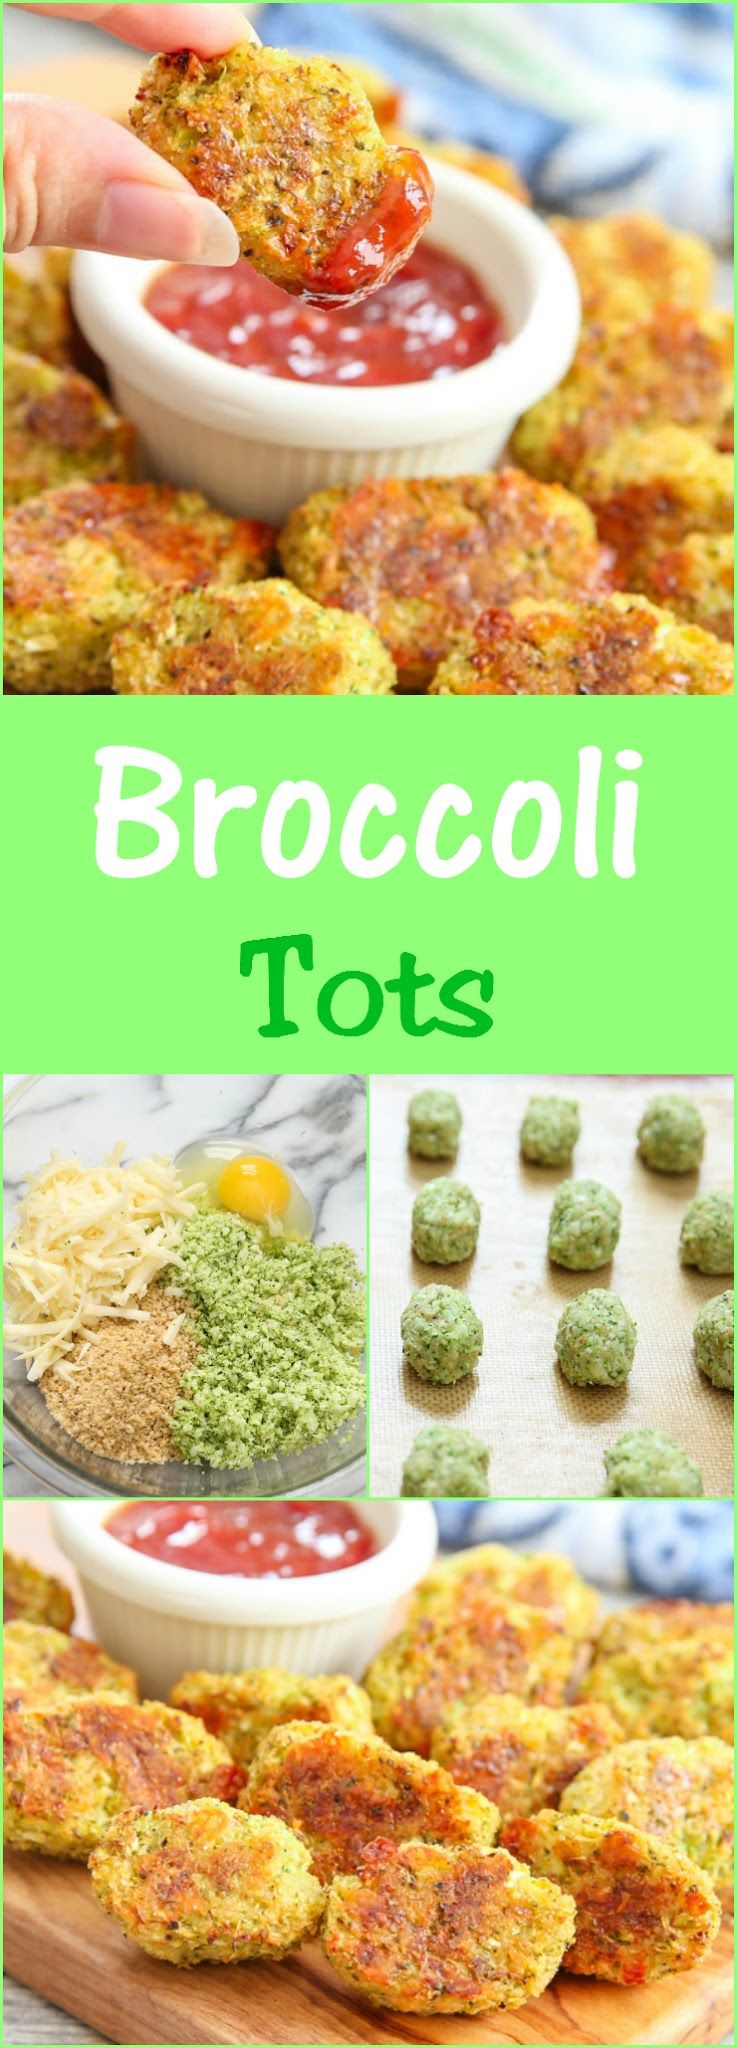 Broccoli Tots Ingredients:      1 1/2 cups lightly packed finely chopped raw broccoli (it's best to run broccoli through a food processor; 1 head will yield about 1 1/2 cups)     1/2 cup Italian seasoned panko bread crumbs (if you use non-seasoned panko bread crumbs, make sure to add Italian seasoning to your mix)     1/2 cup shredded cheddar cheese     1 large egg